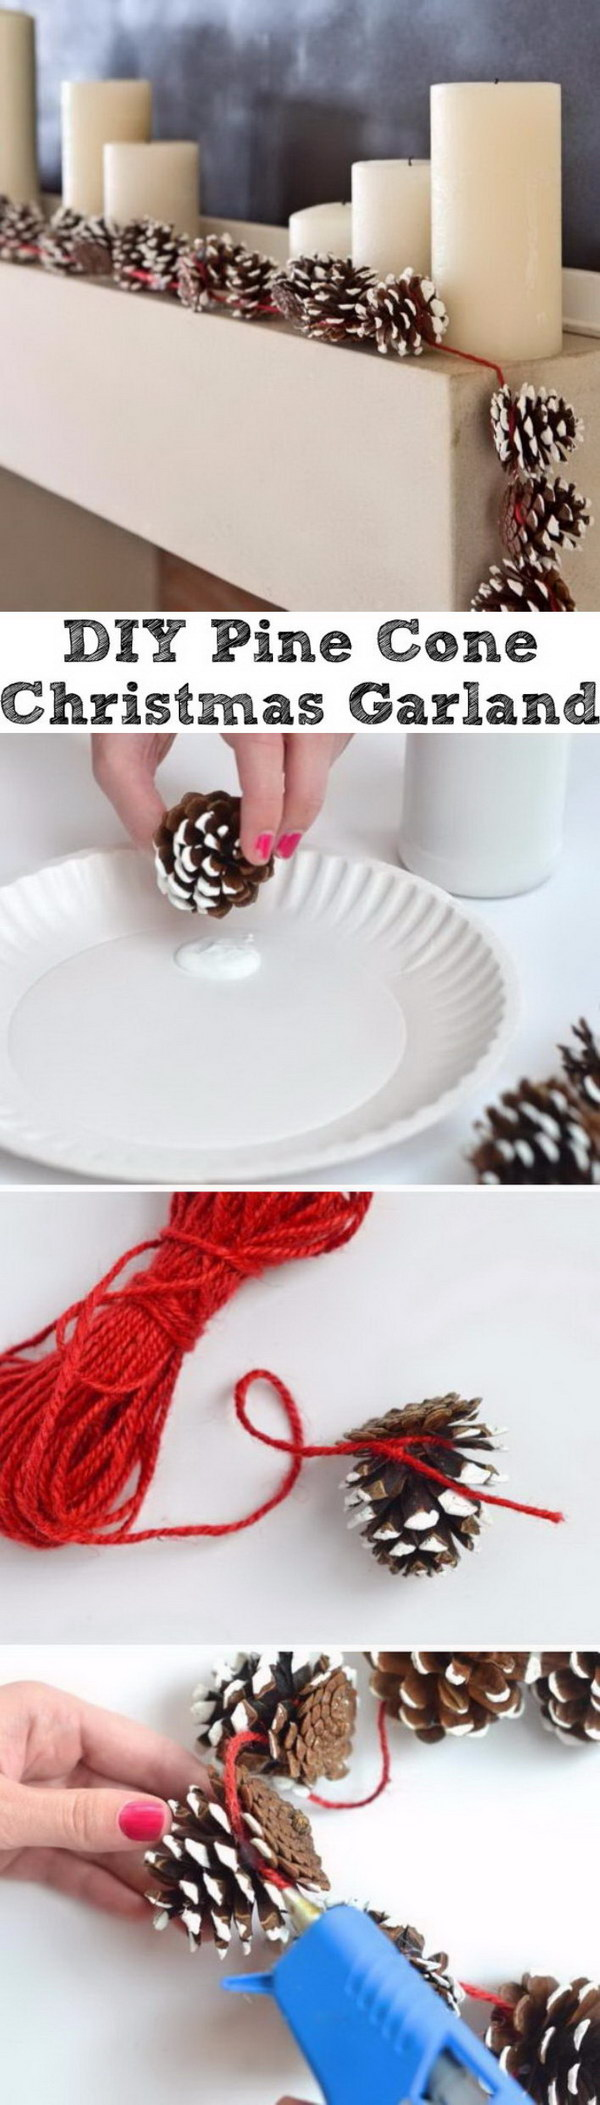 Pine Cone Christmas Garlands.